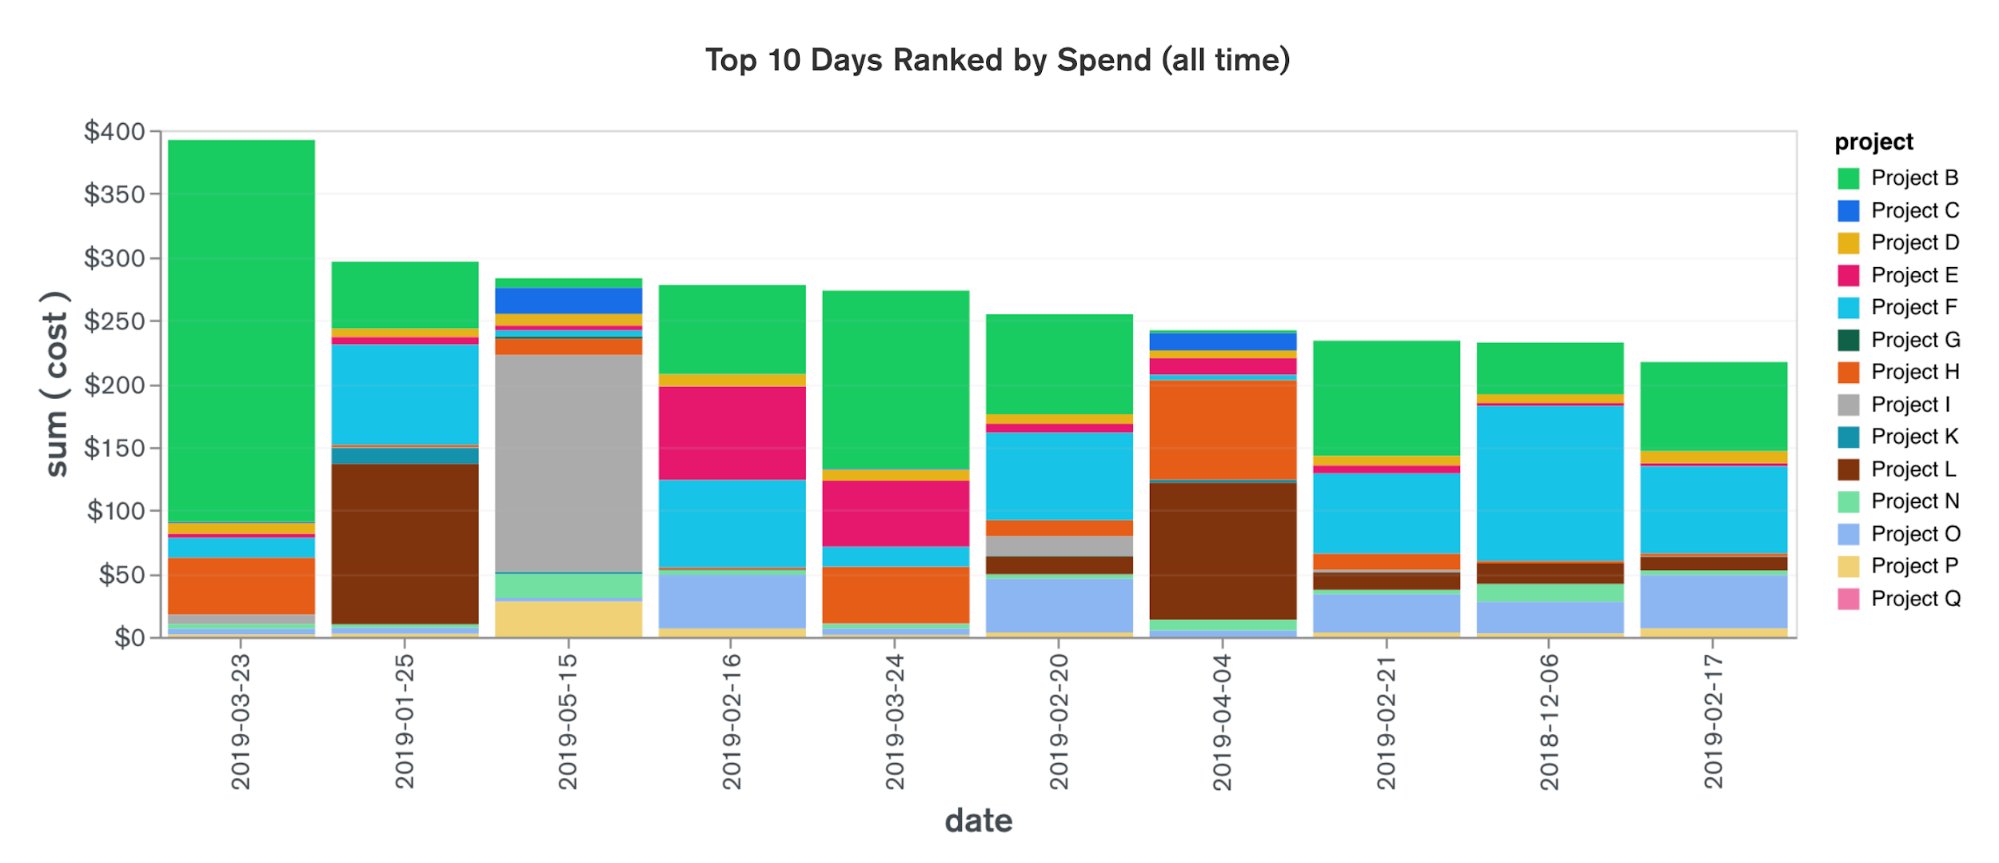 Top 10 days ranked by spend